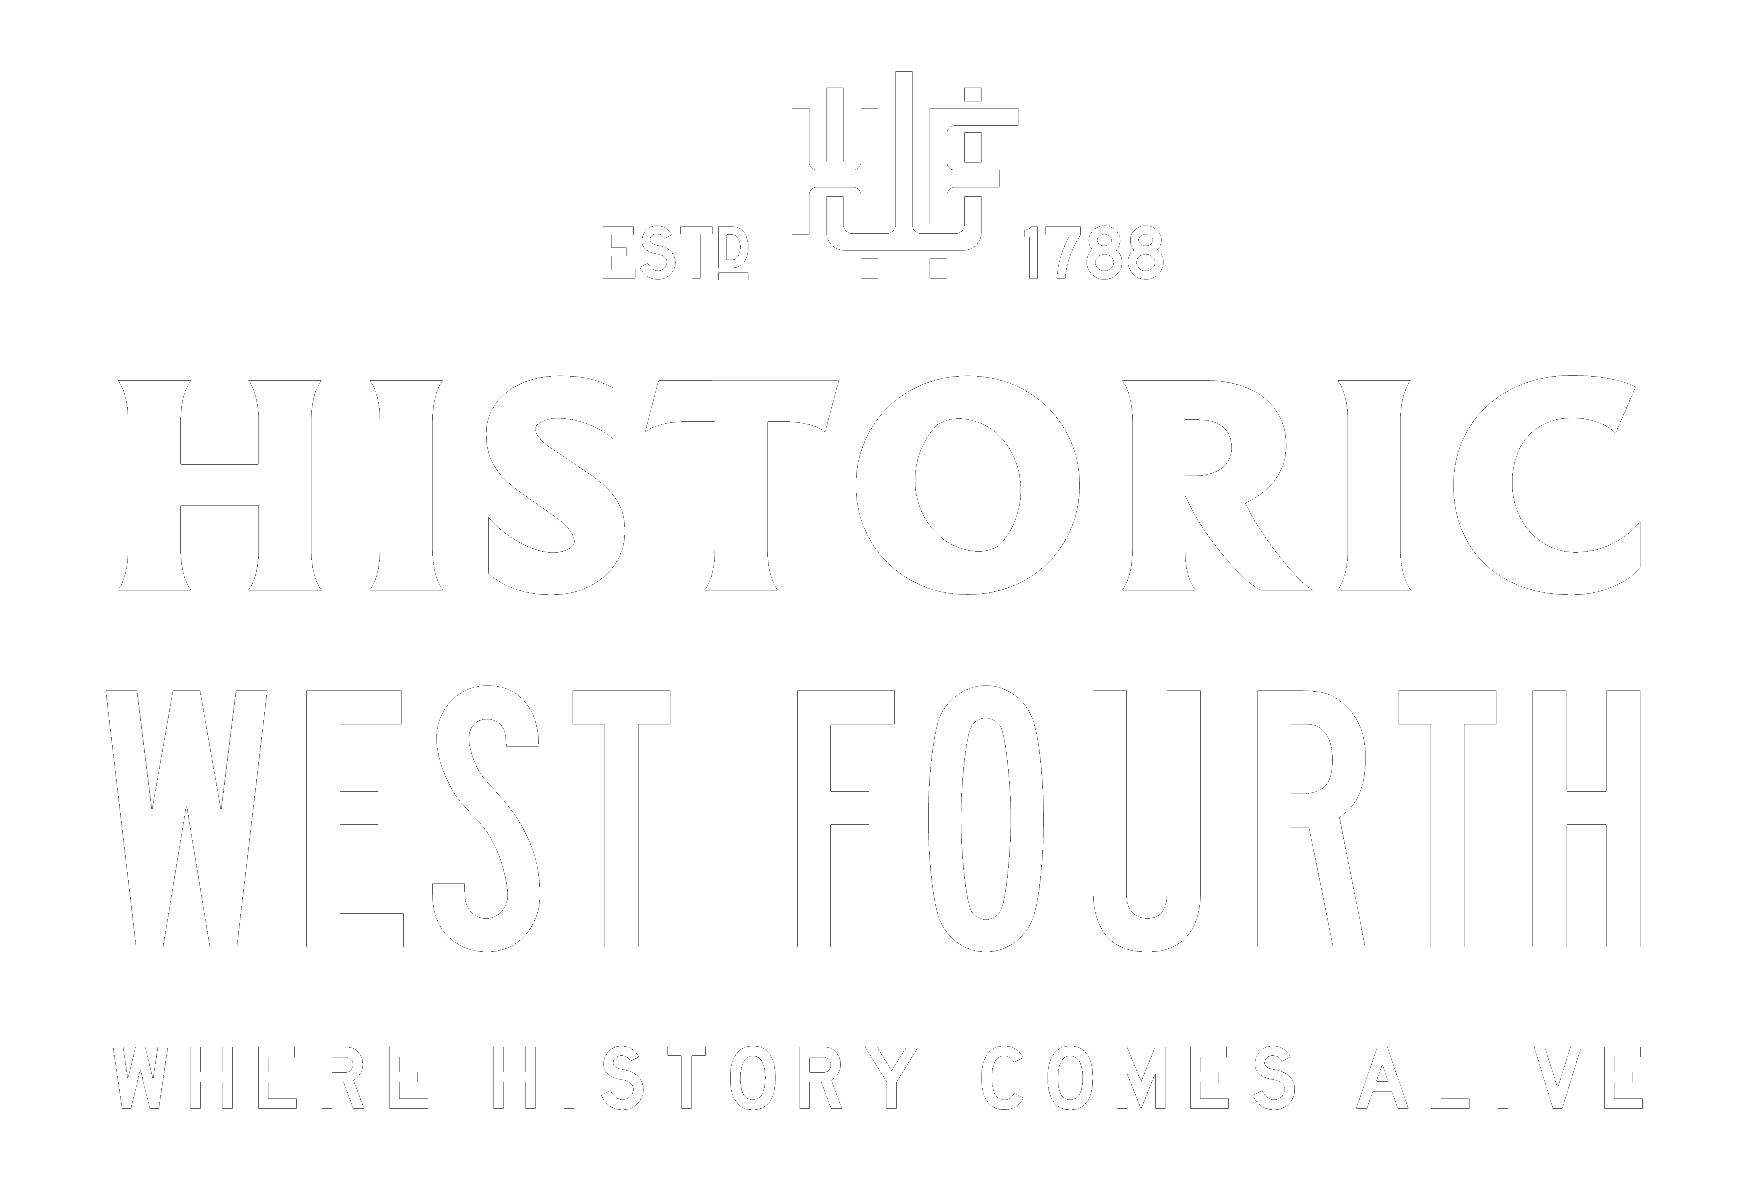 Historic Fourth District Logo